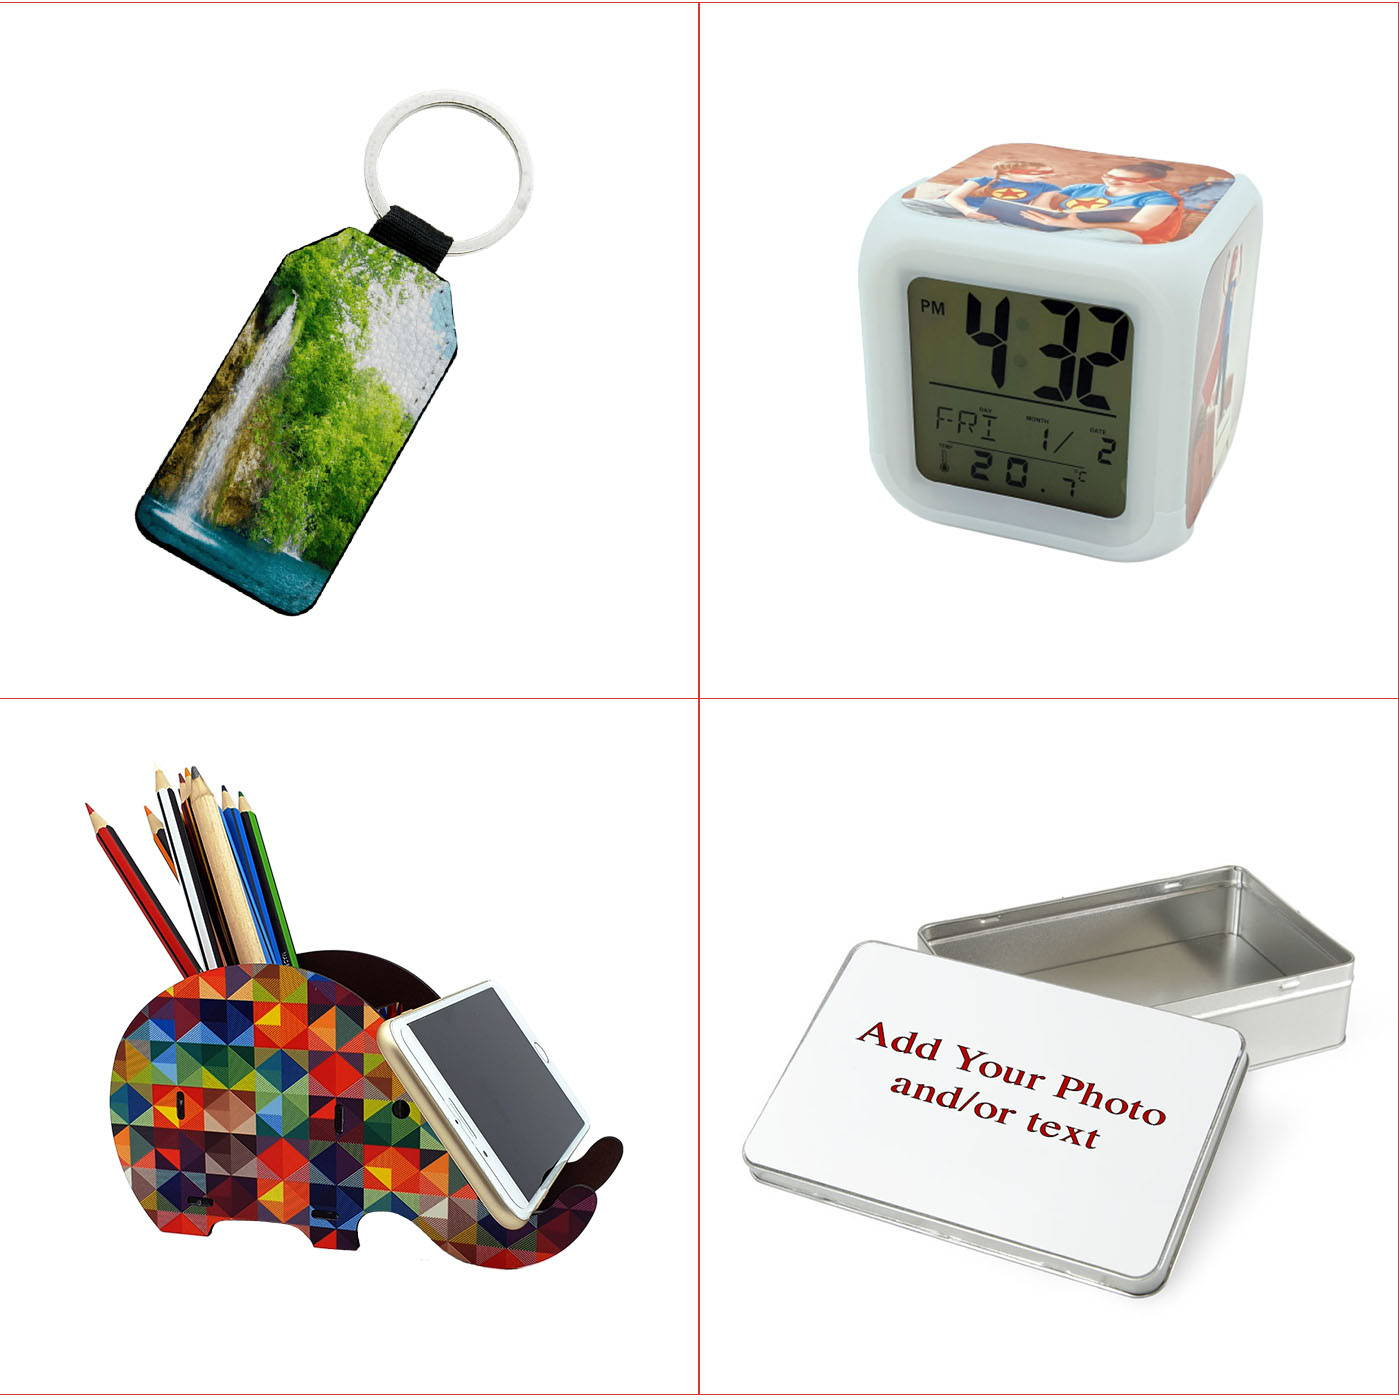 personalided desk organiser with 36% off